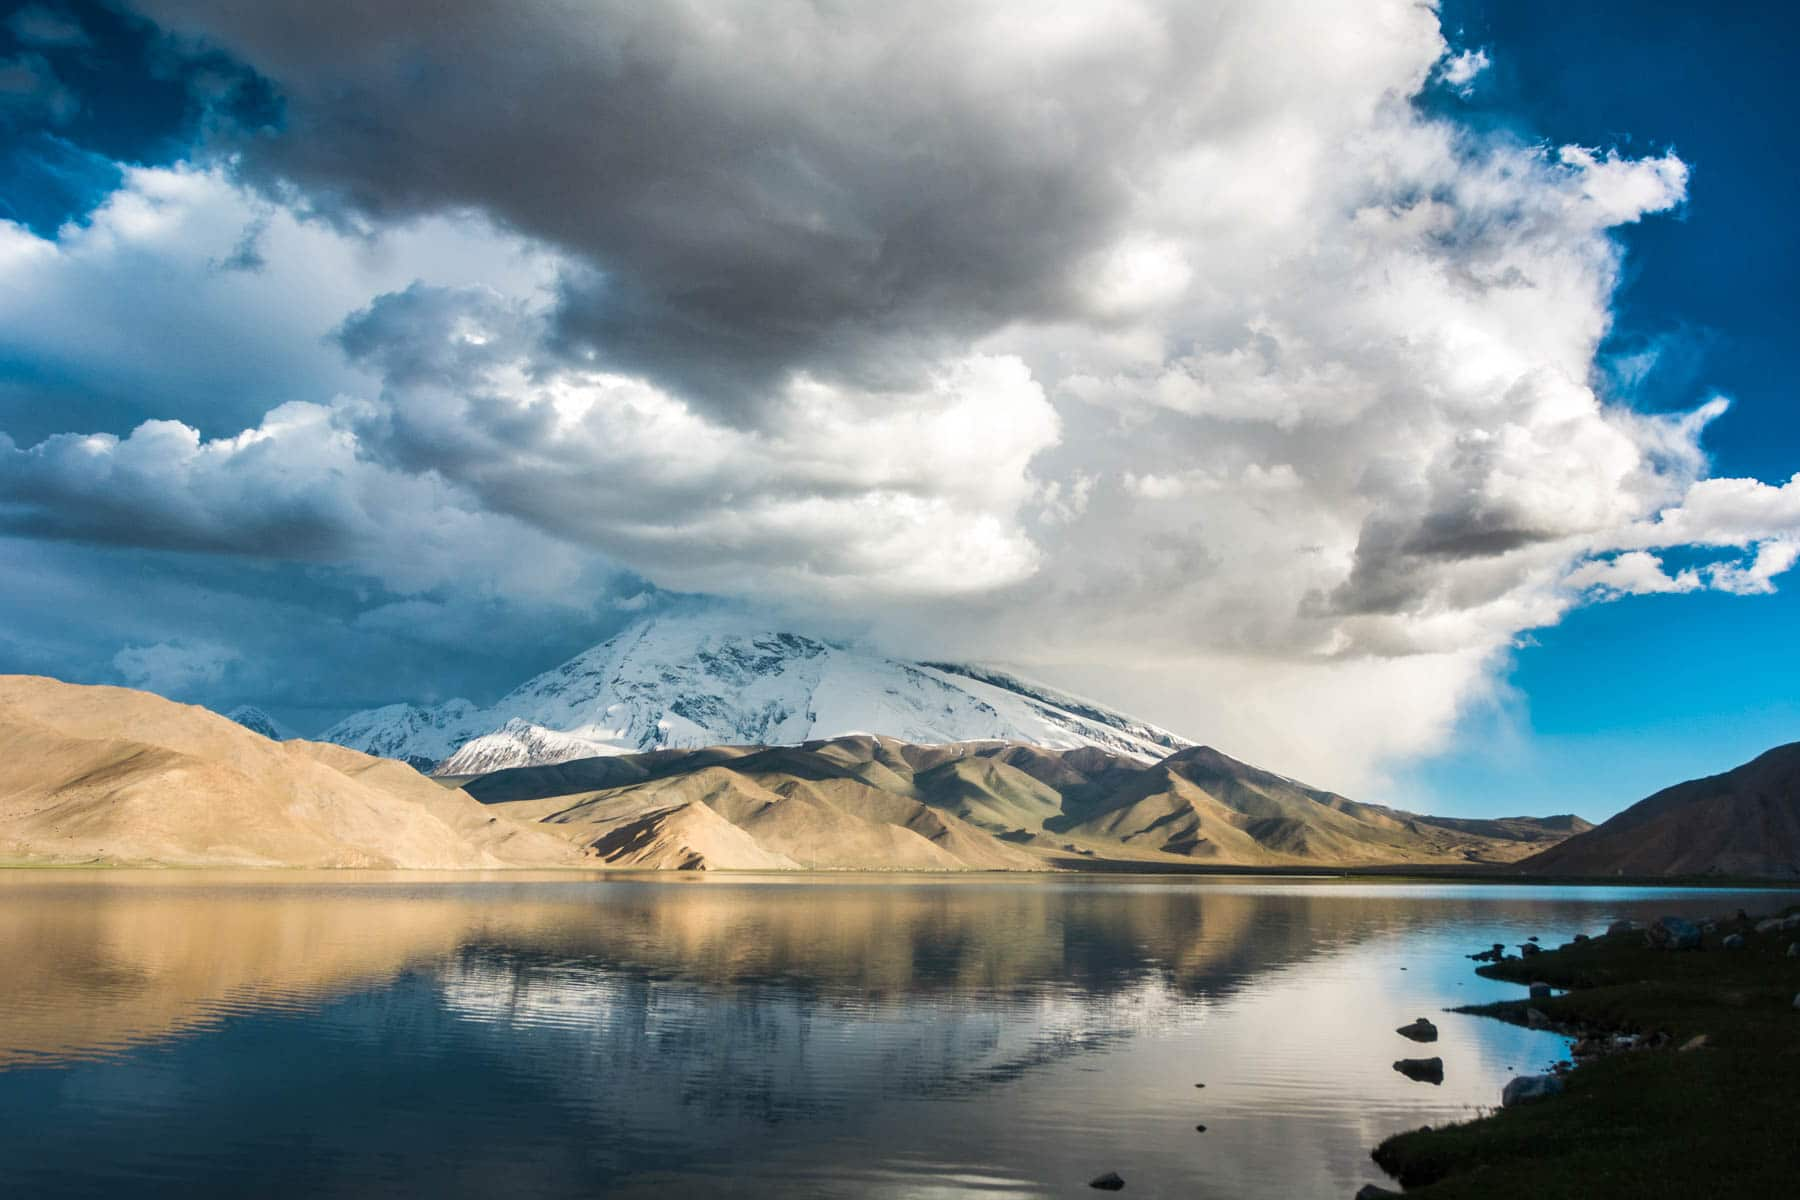 Karakul lake in Xinjiang province, China